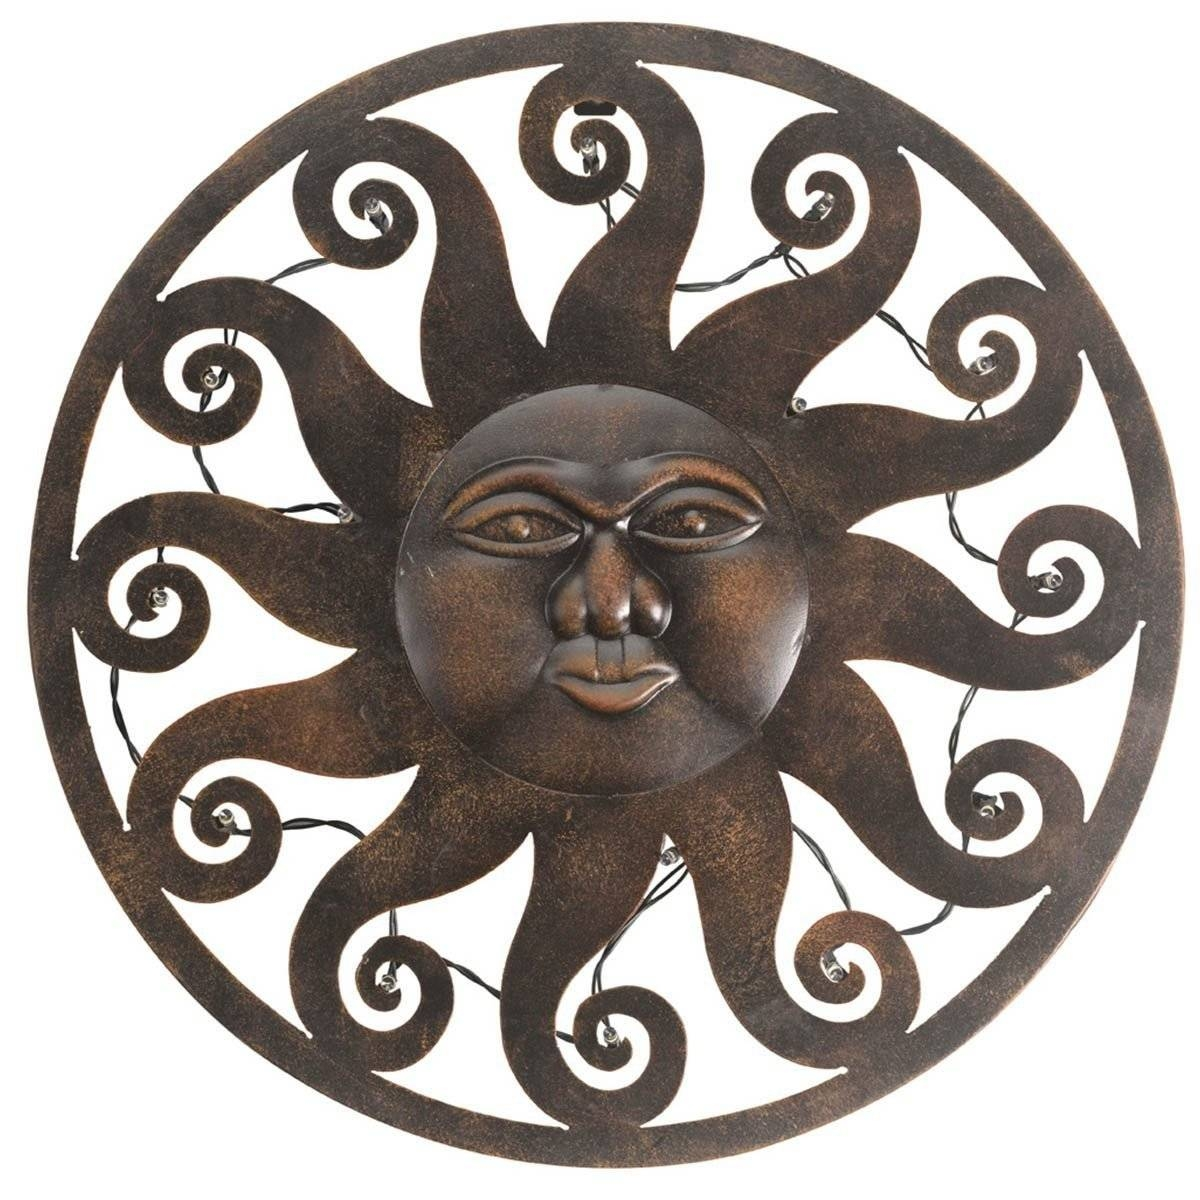 Celestial Sun Led Wall Art | Available At This Is It Stores Uk Intended For 2017 Garden Metal Wall Art (View 2 of 20)